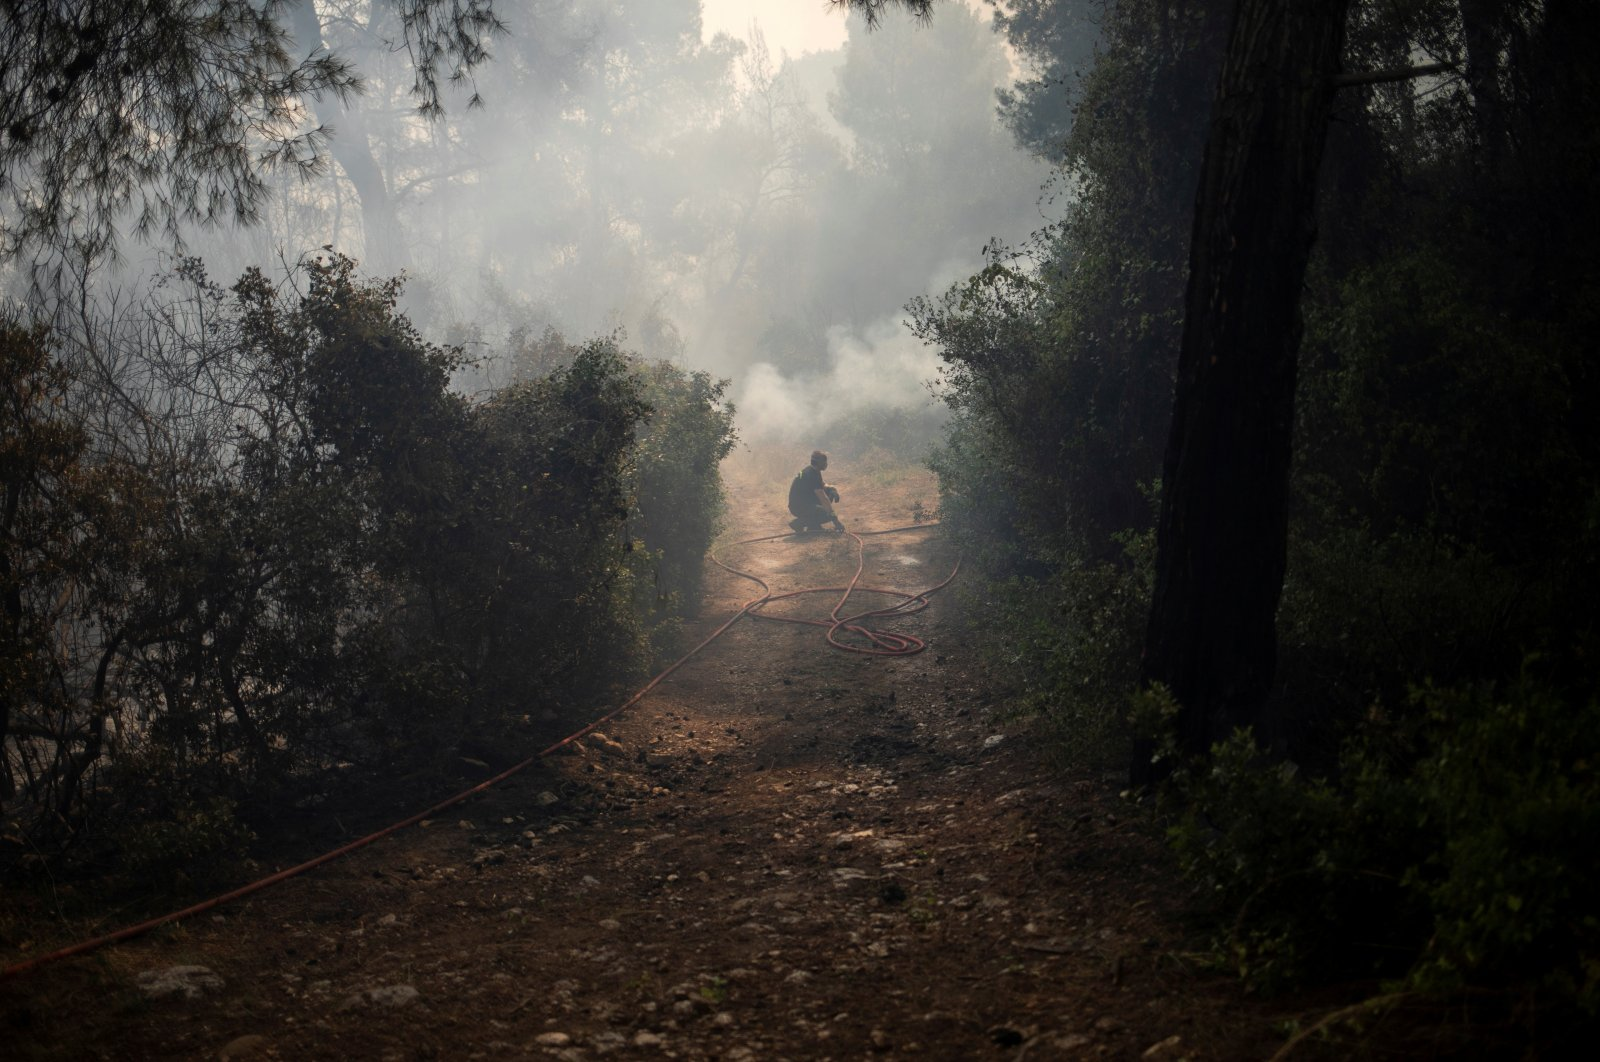 A firefighter pauses as he tries to extinguish a fire burning in the village of Mazi, near Corinth, Greece, May 20, 2021. (Reuters Photo)